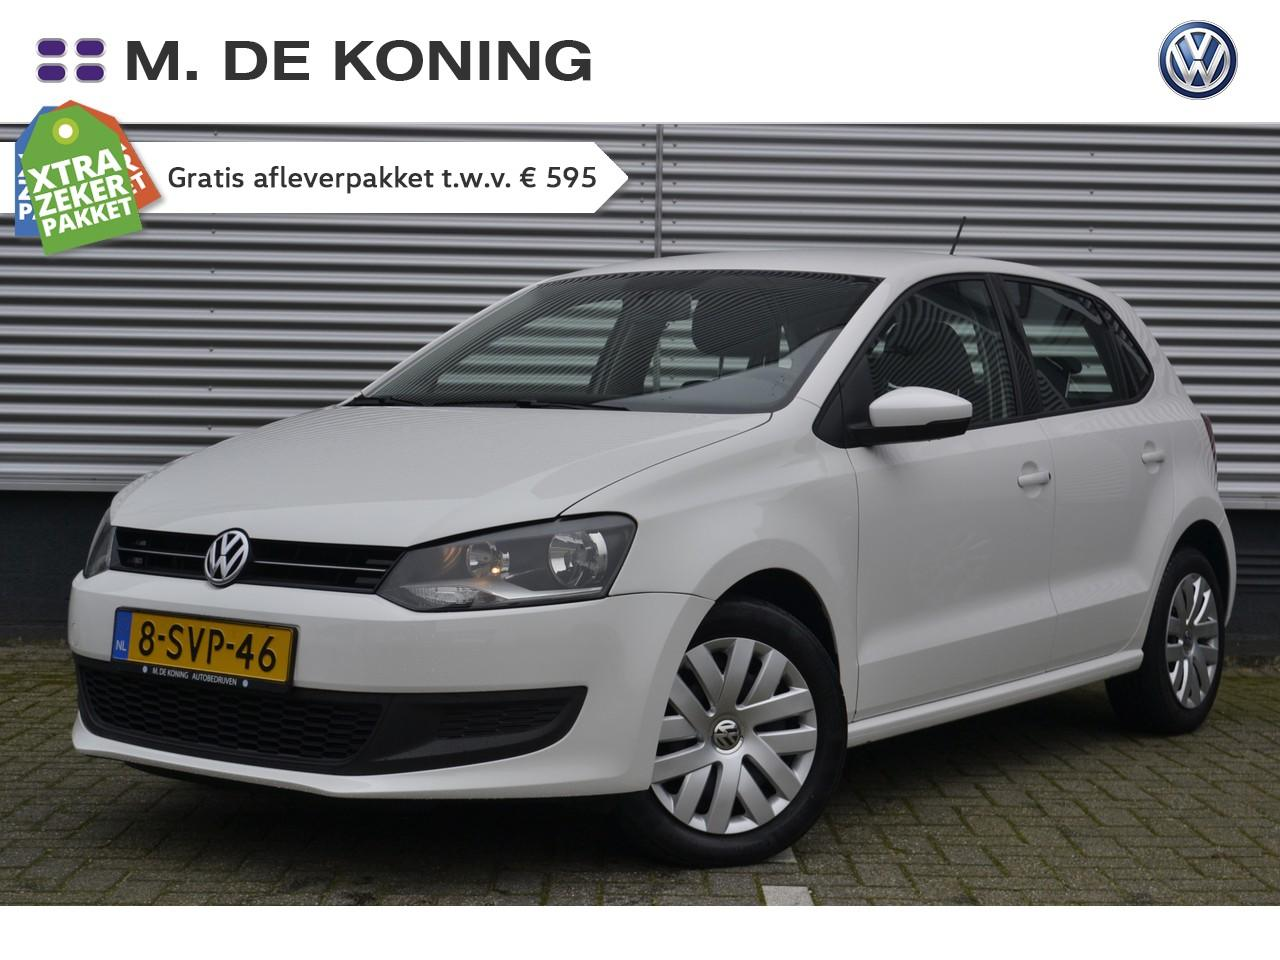 Volkswagen Polo 1.2tsi/90pk edition · airco · trekhaak